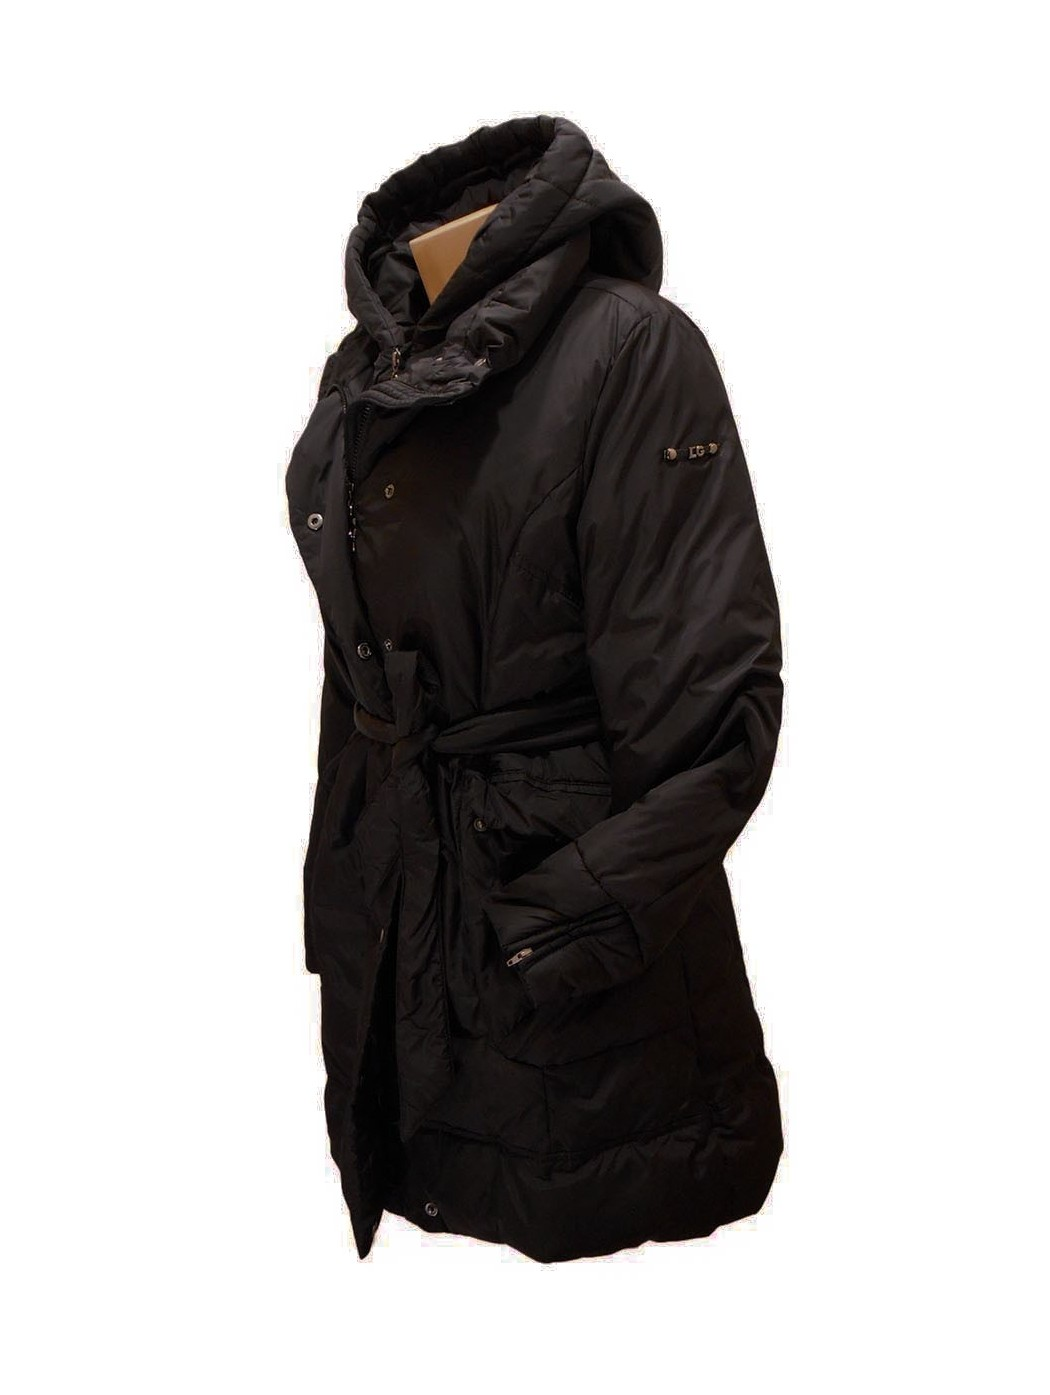 Down jacket by Luca Giordani